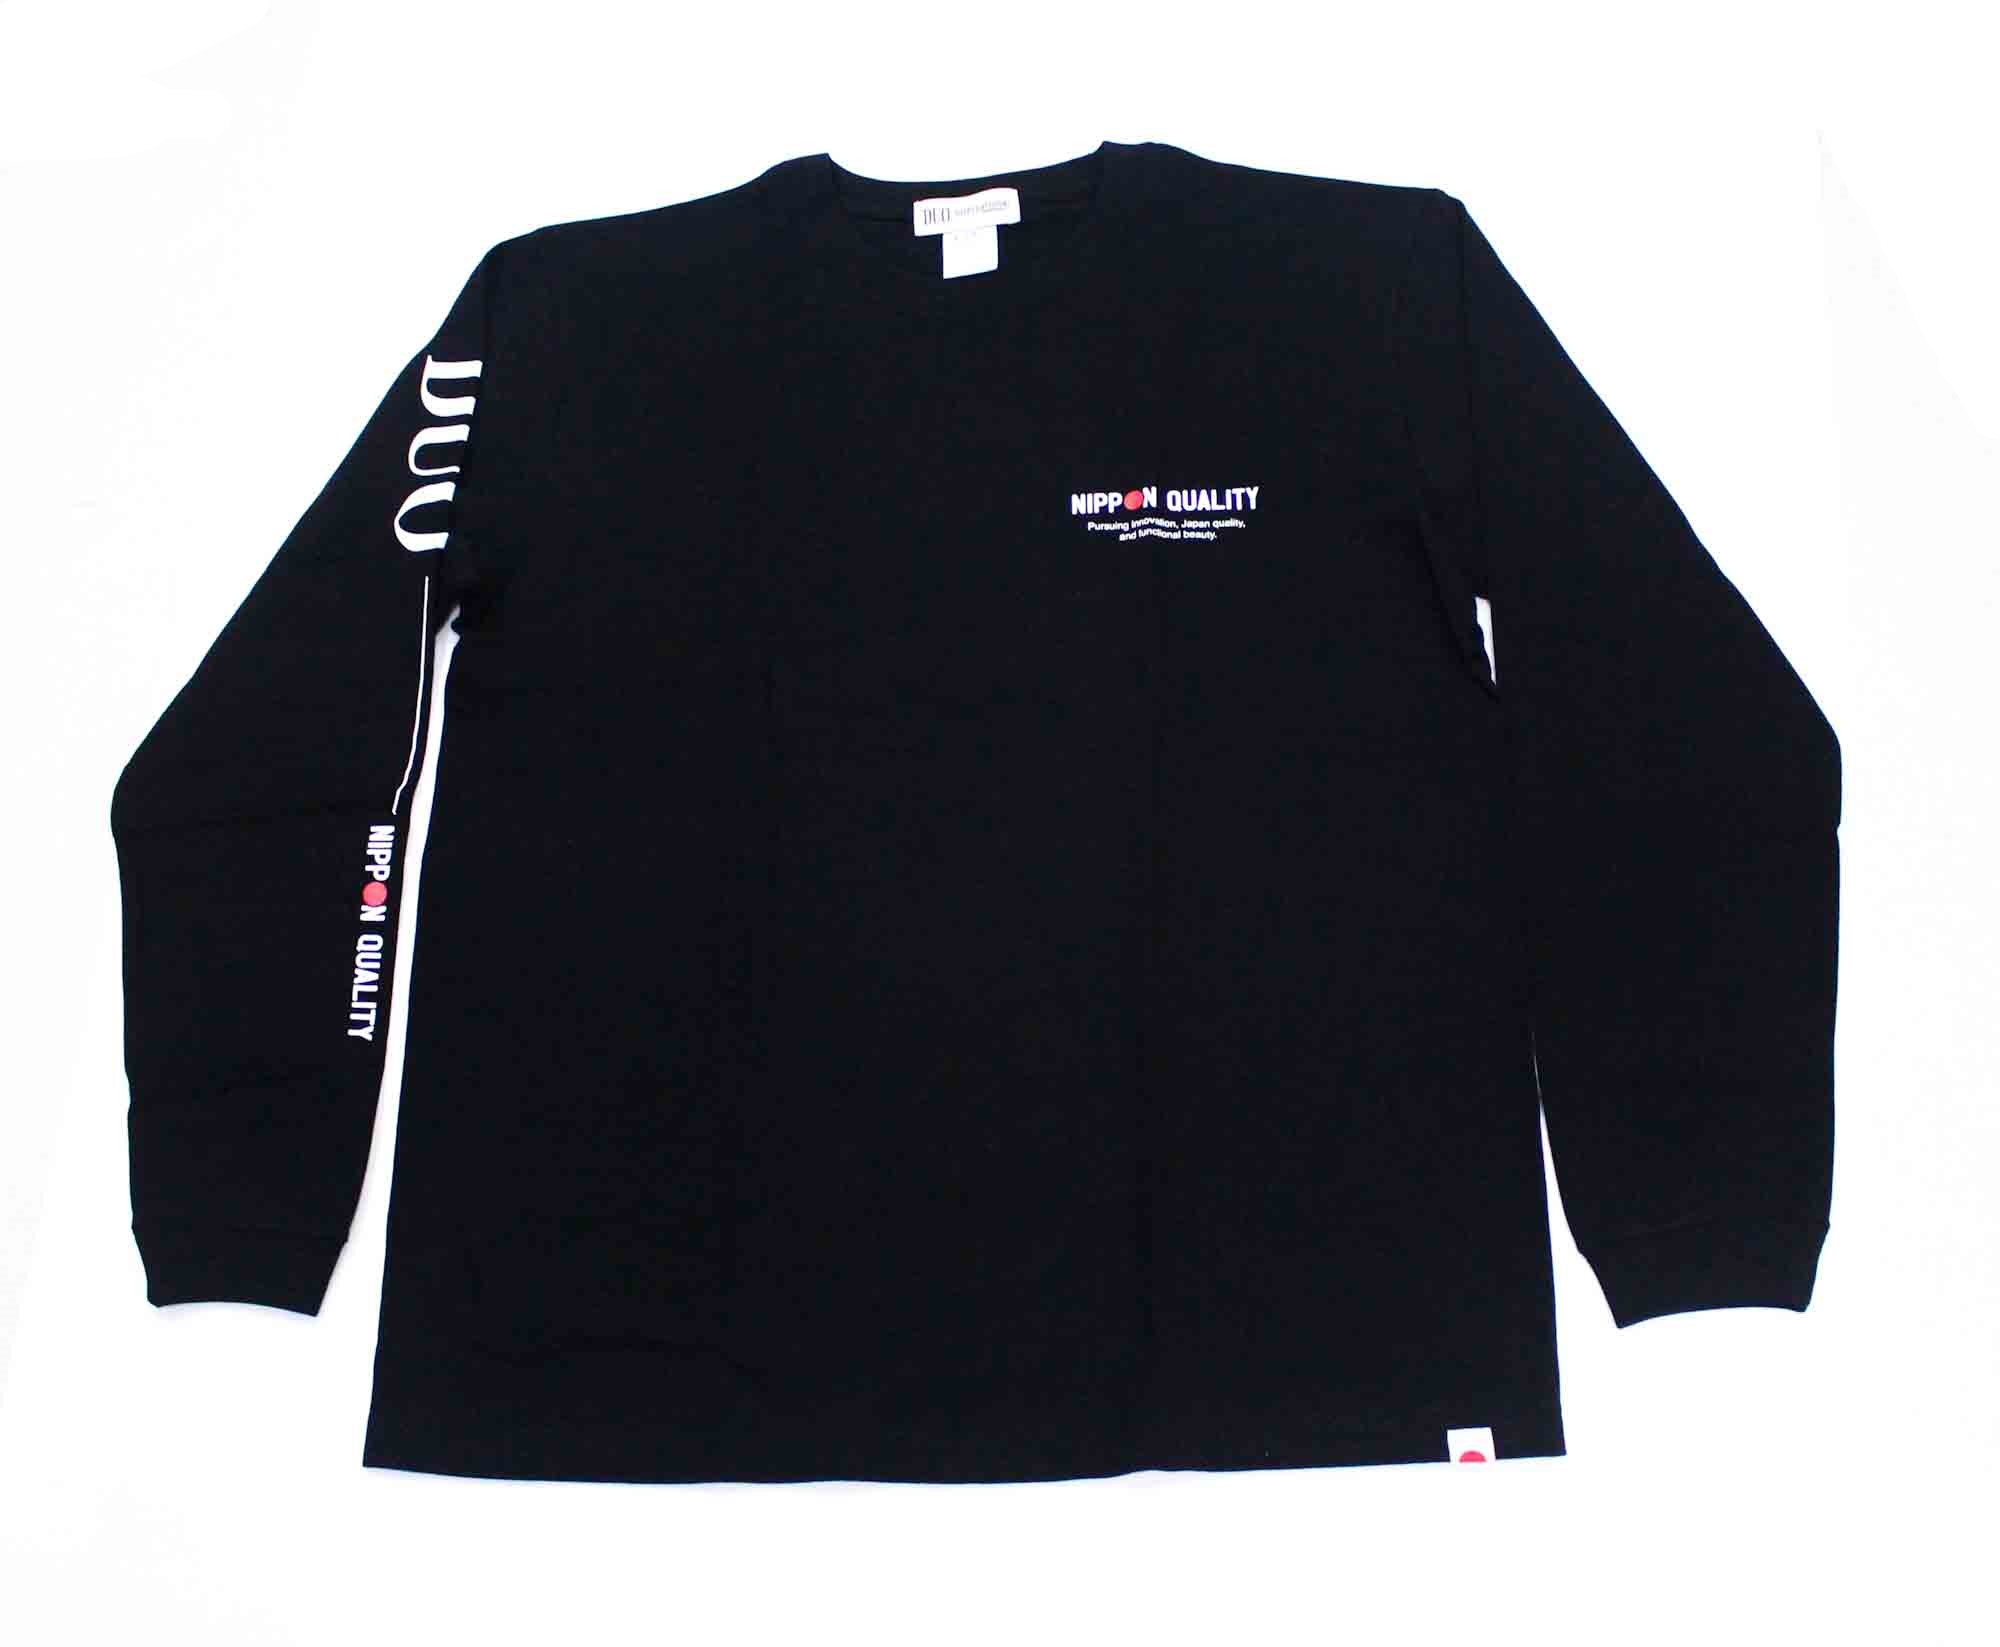 Duo T Shirt Long Sleeve 2021 Black Size XXL (1041)